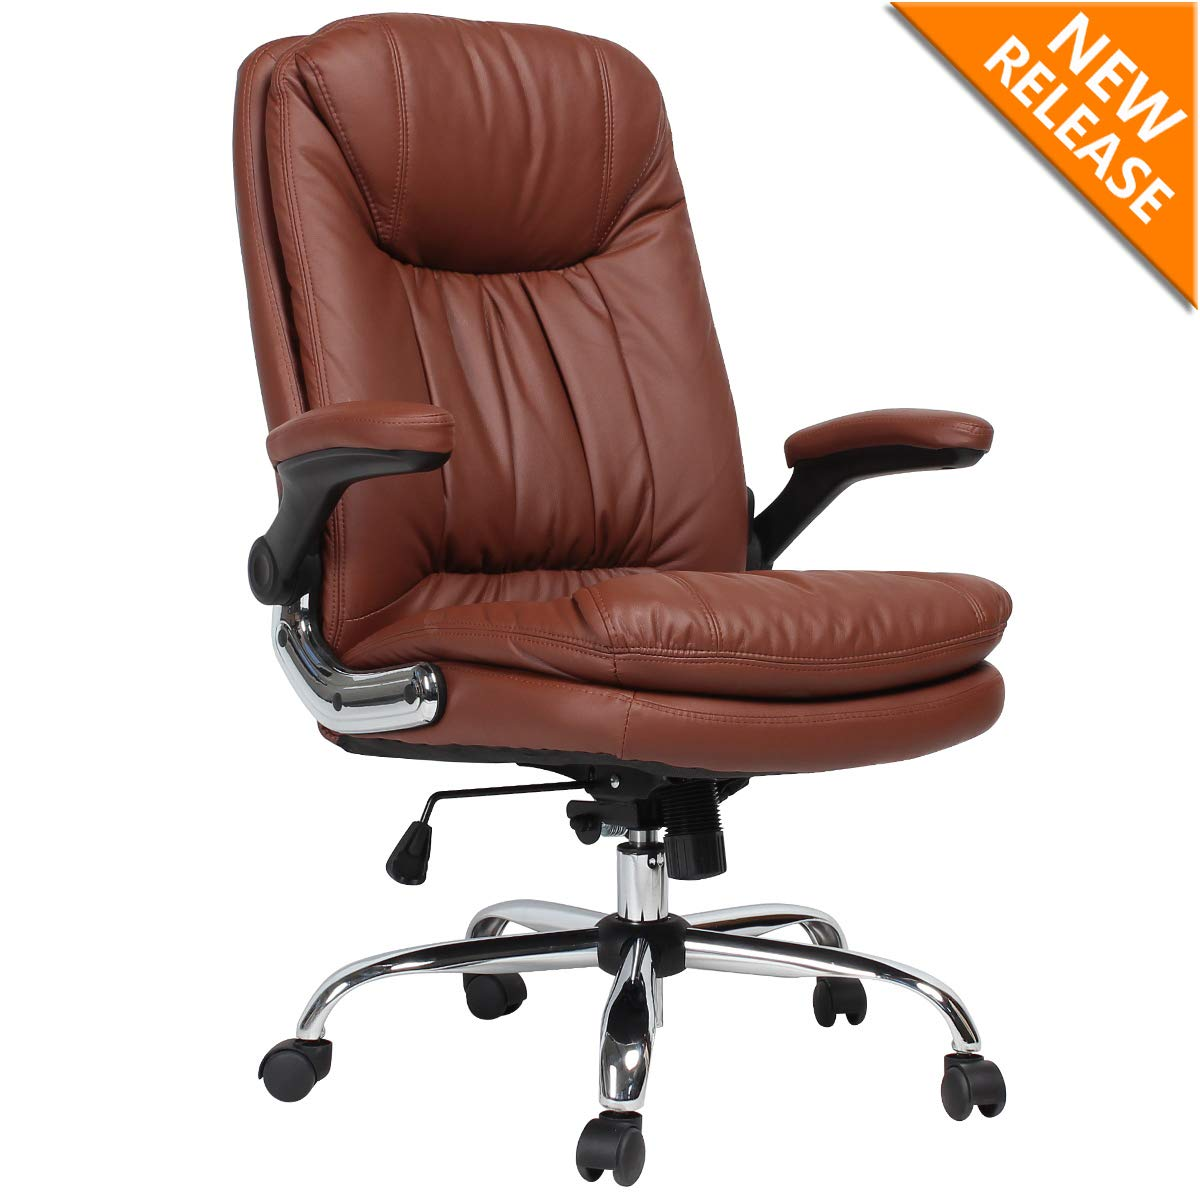 Ergonomic Office Desk Chairs Computer Gaming Chair PU Leather Chair Brown Executive Computer Chair Swivel Rolling Lumbar Support for Women, Men